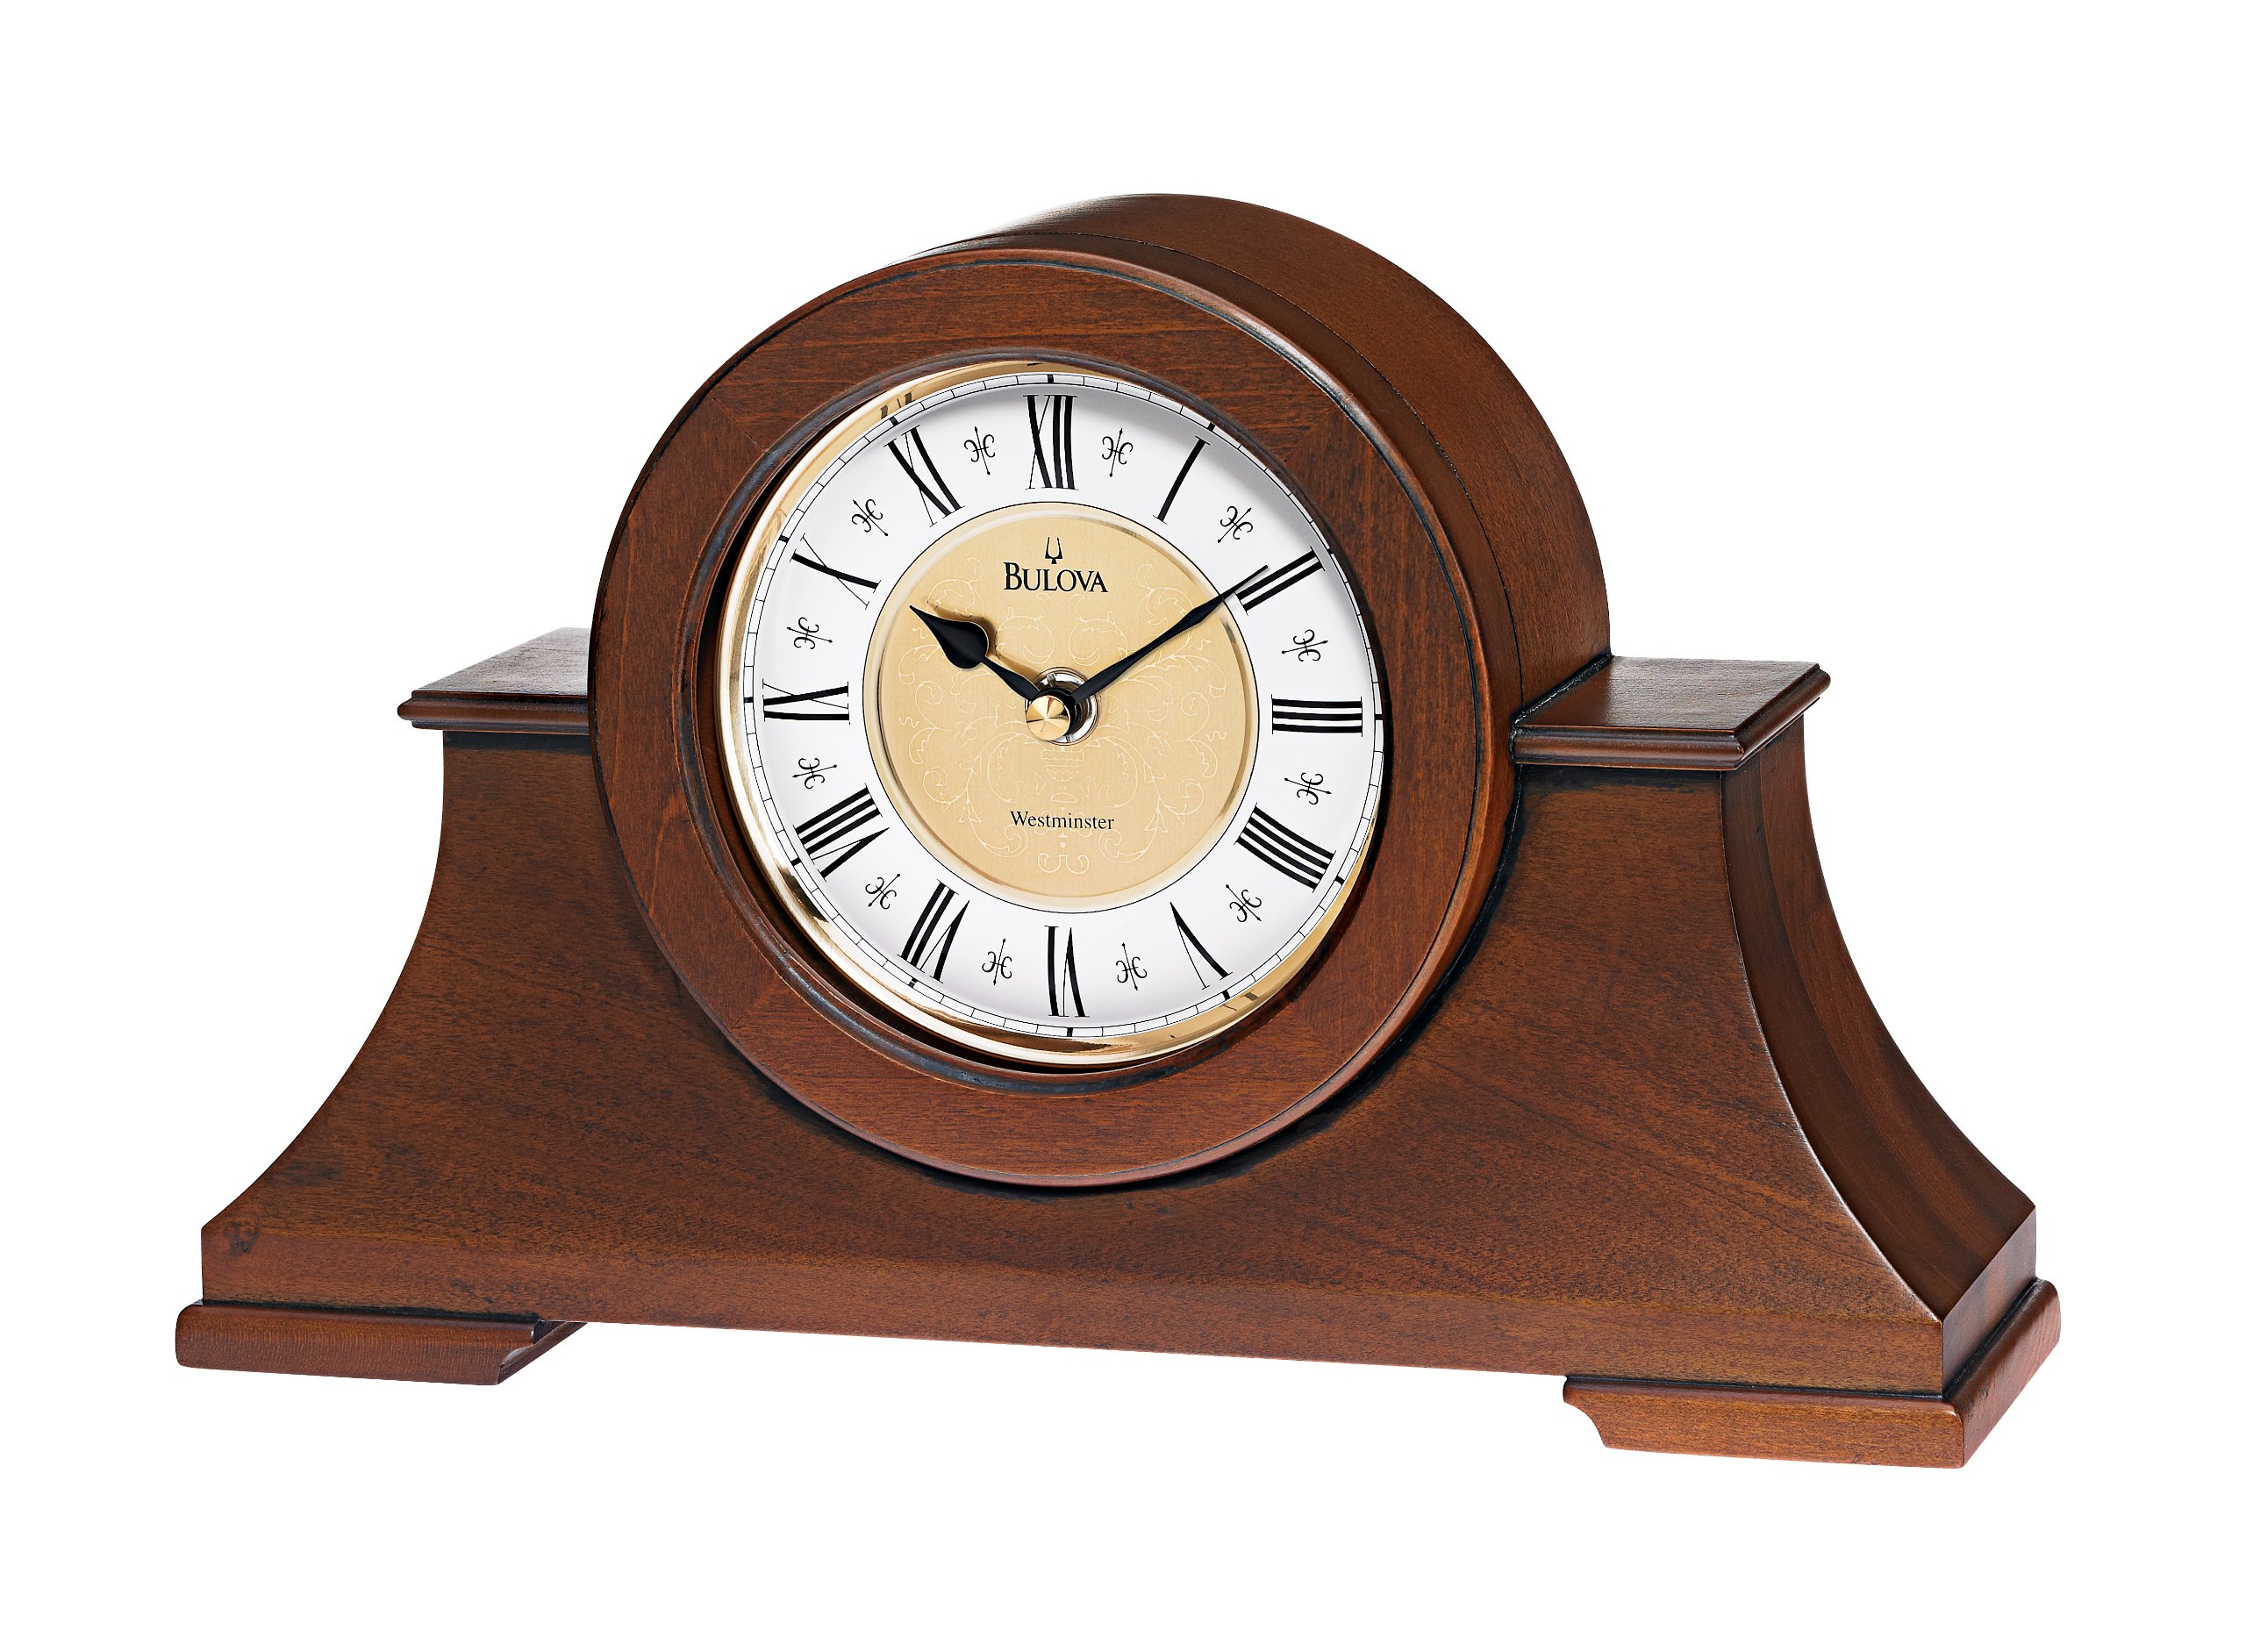 Cambria Mantel Clock with Westminster Chime by Bulova